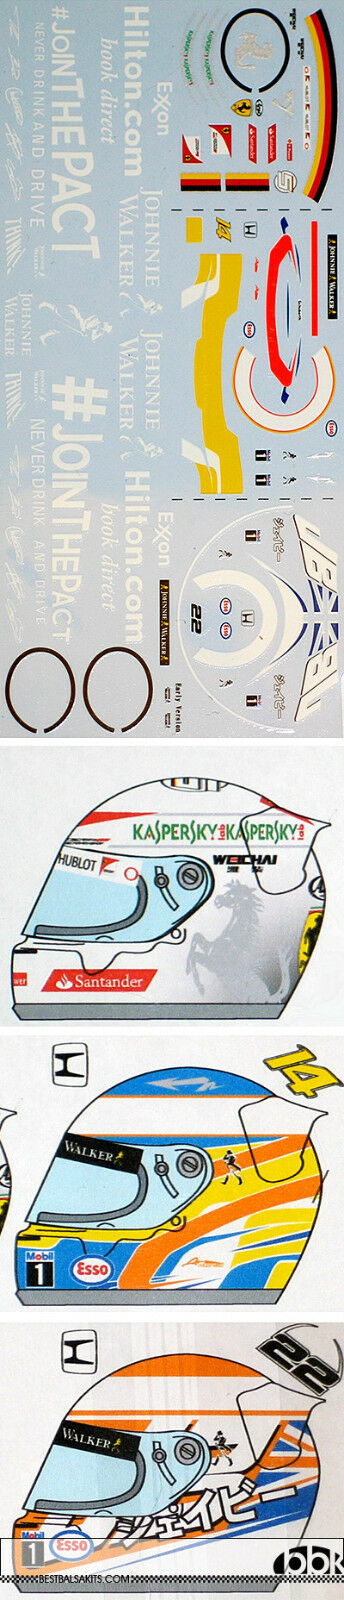 1 20 McLAREN MP4 30 JOIN THE PACT & HELMET DECALS for EBBRO 20013 BUTTON ALONSO